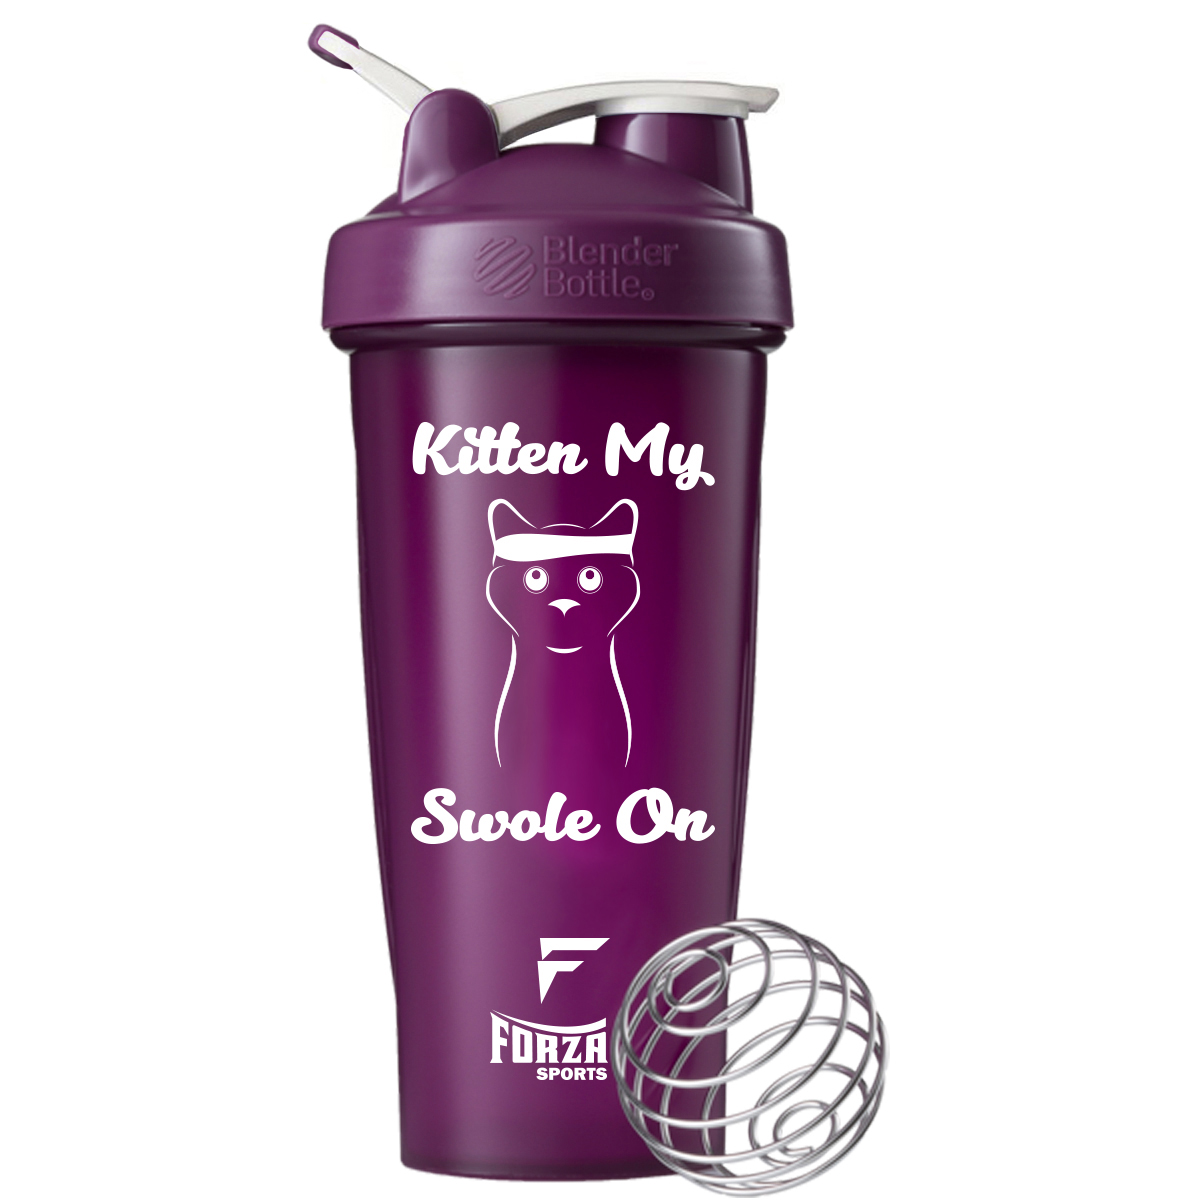 Blender-Bottle-x-Forza-Sports-Classic-28-oz-Shaker-Mixer-Cup-with-Loop-Top thumbnail 25